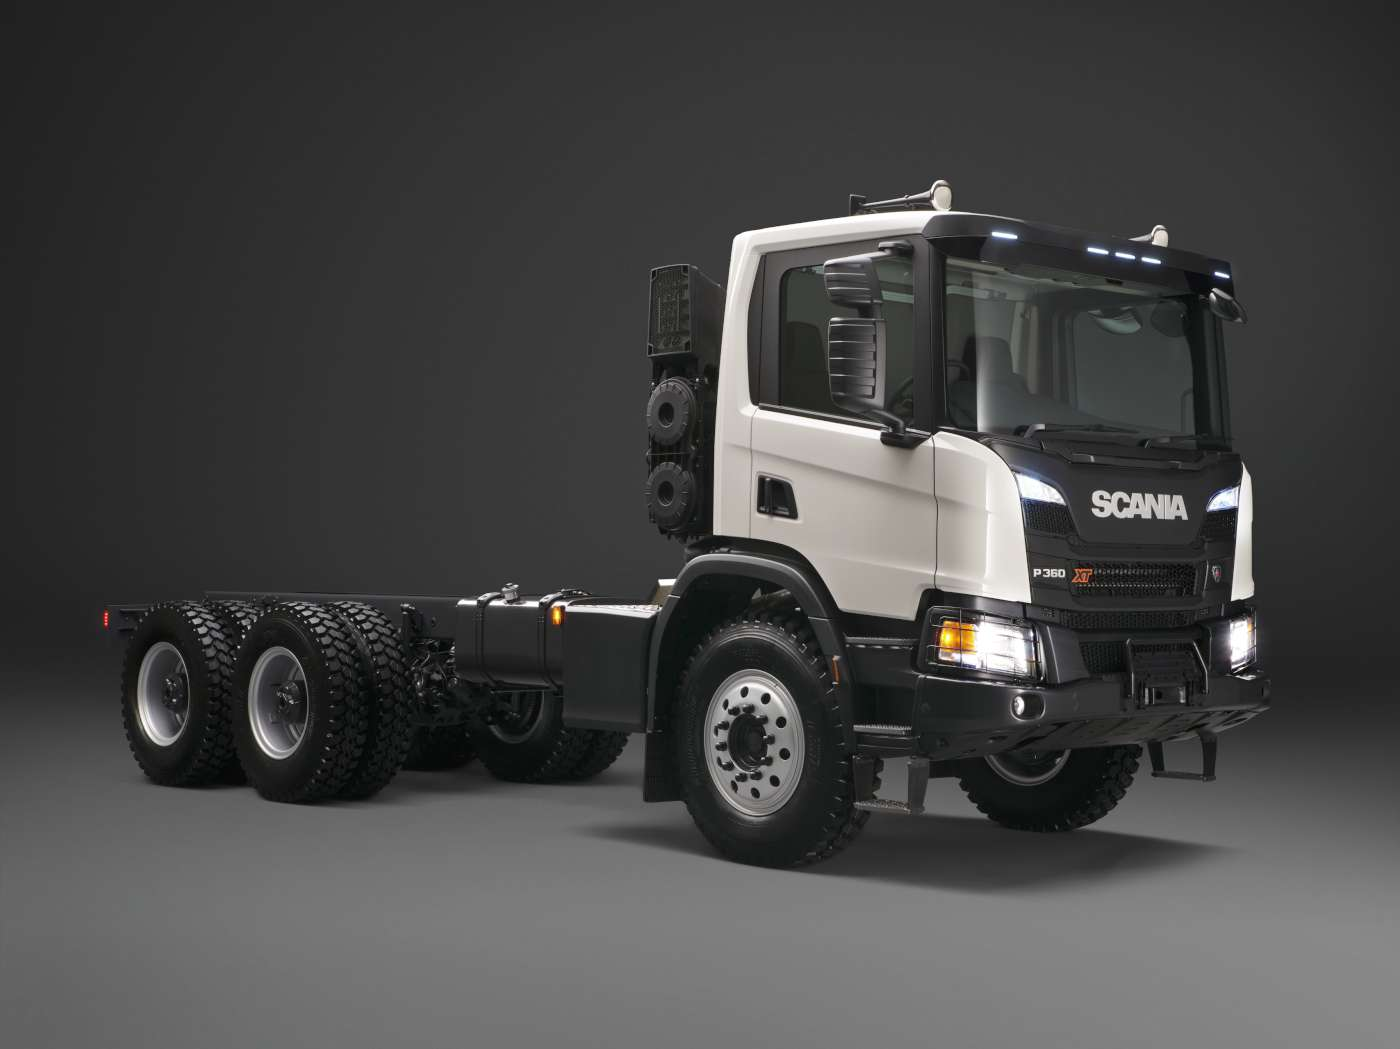 Scania: 10 ton front axles for XT models – Iepieleaks